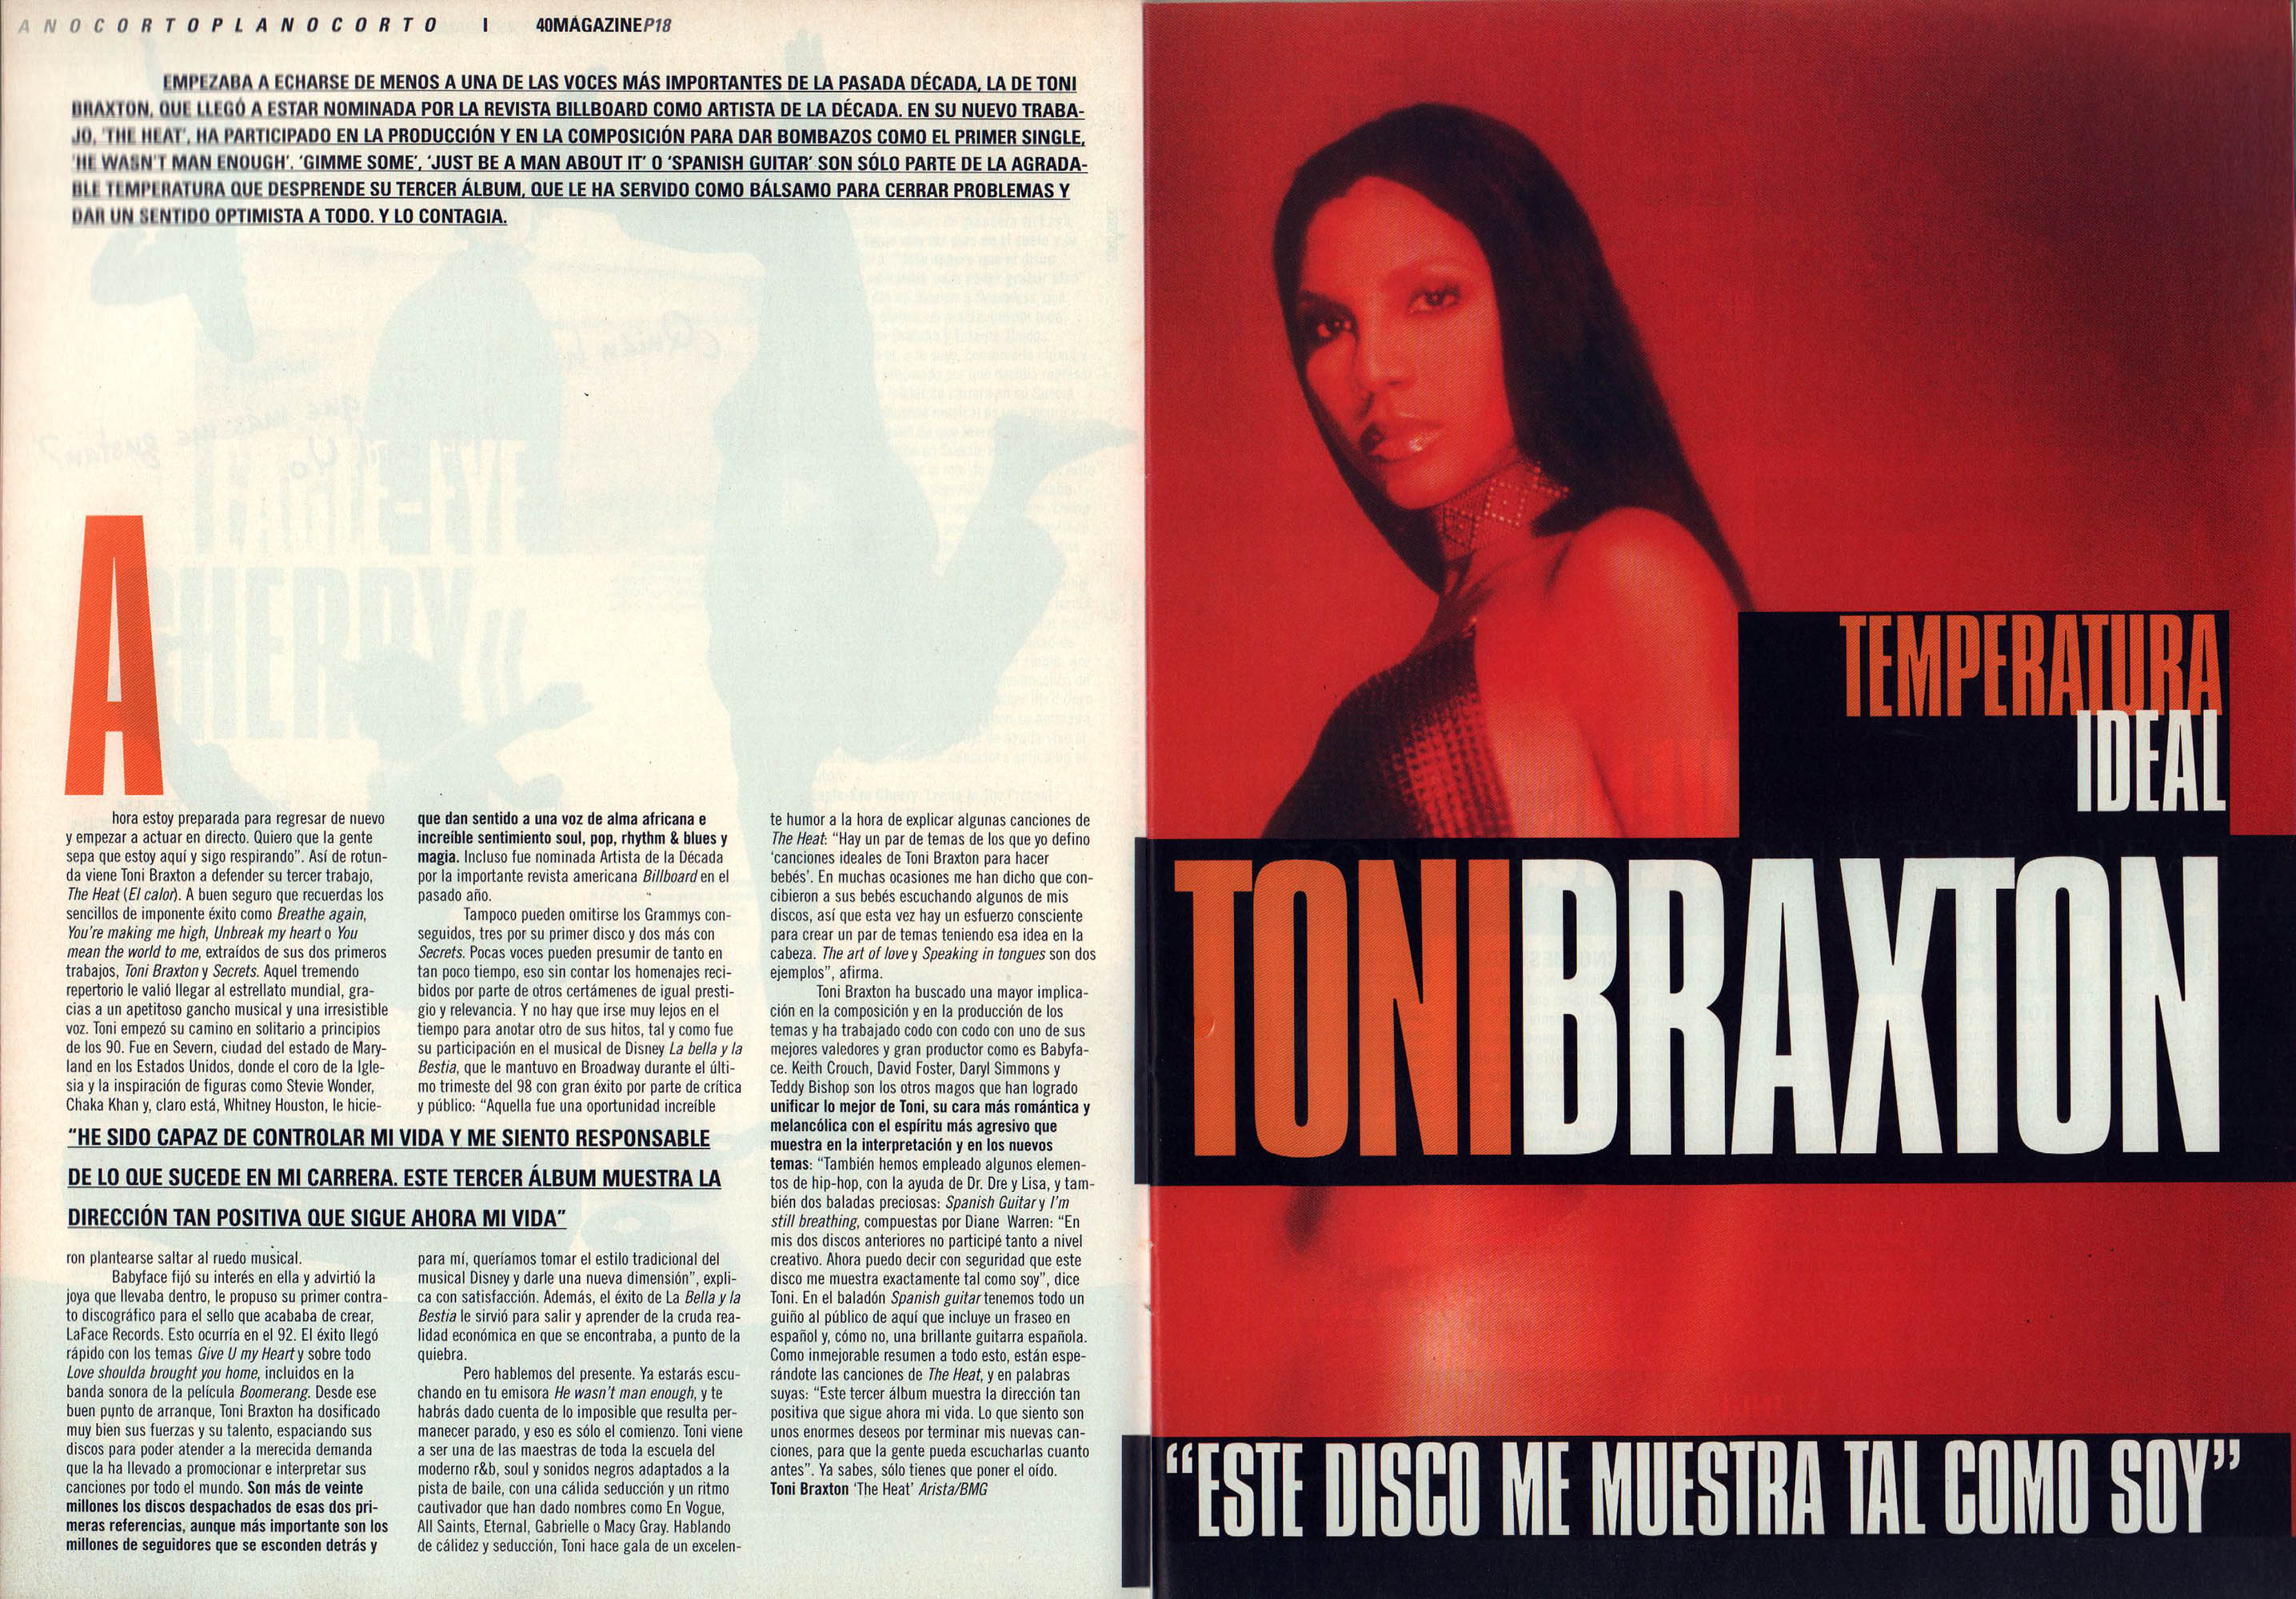 Toni Braxton: temperatura ideal - The heat | 40 Magazine | may 2000